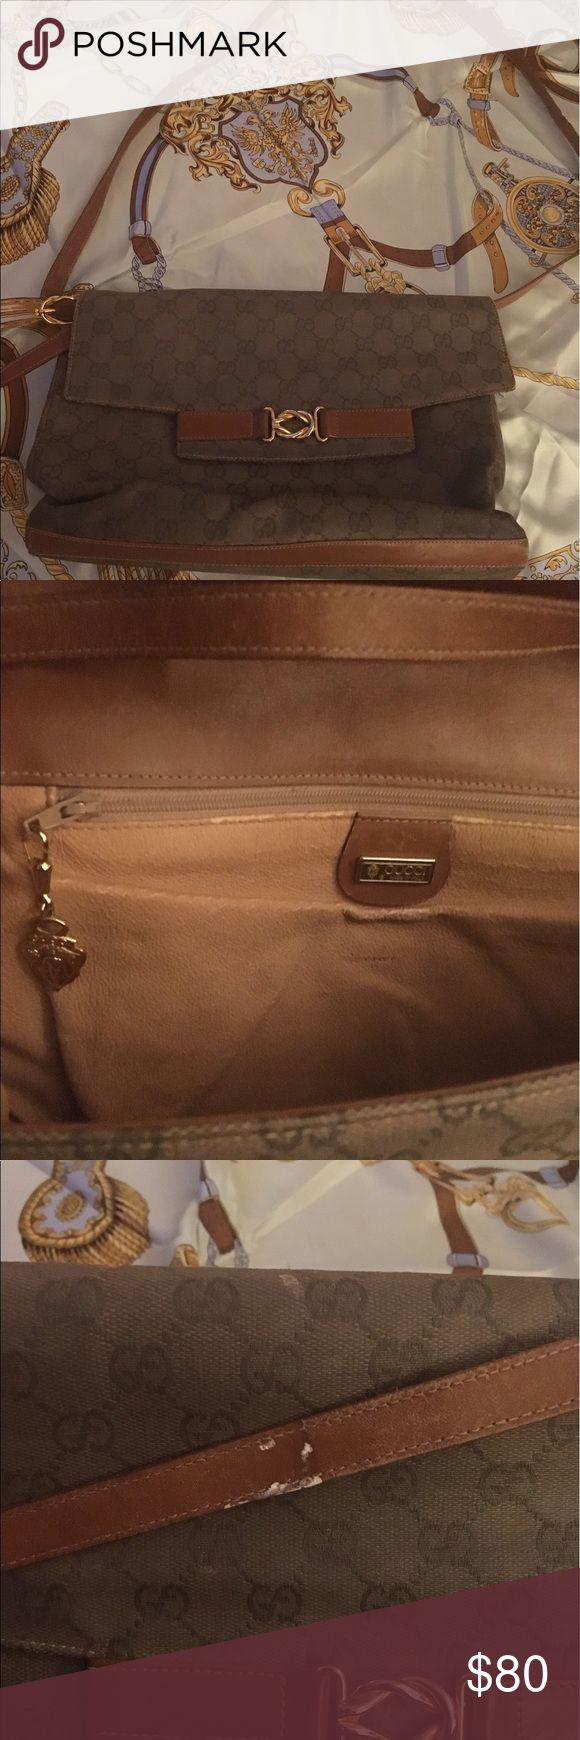 Vintage Gucci handbag Authentic brown Gucci bag with gold details. Previously  owned; used condition and could use a good cleaning ( as shown in picture) price referents this classic second hand purse. Gucci Bags